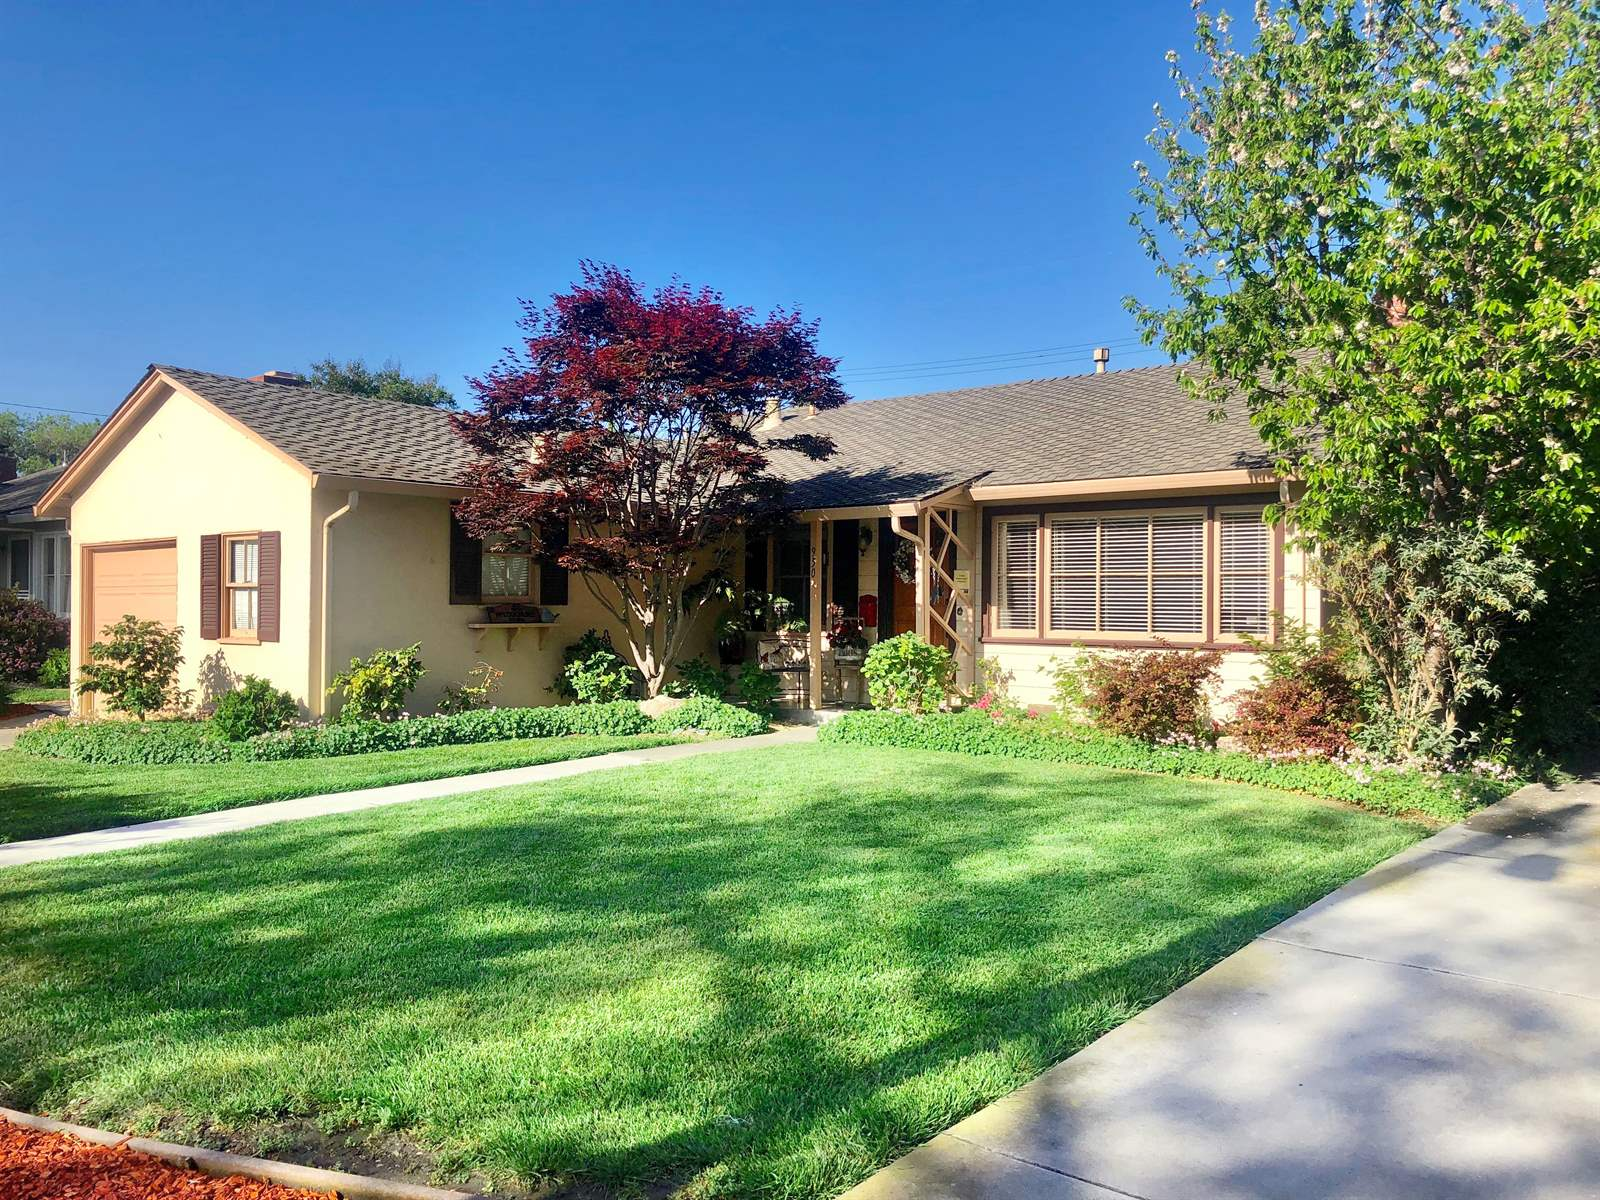 950 Elizabeth DR, one of homes for sale in Santa Clara